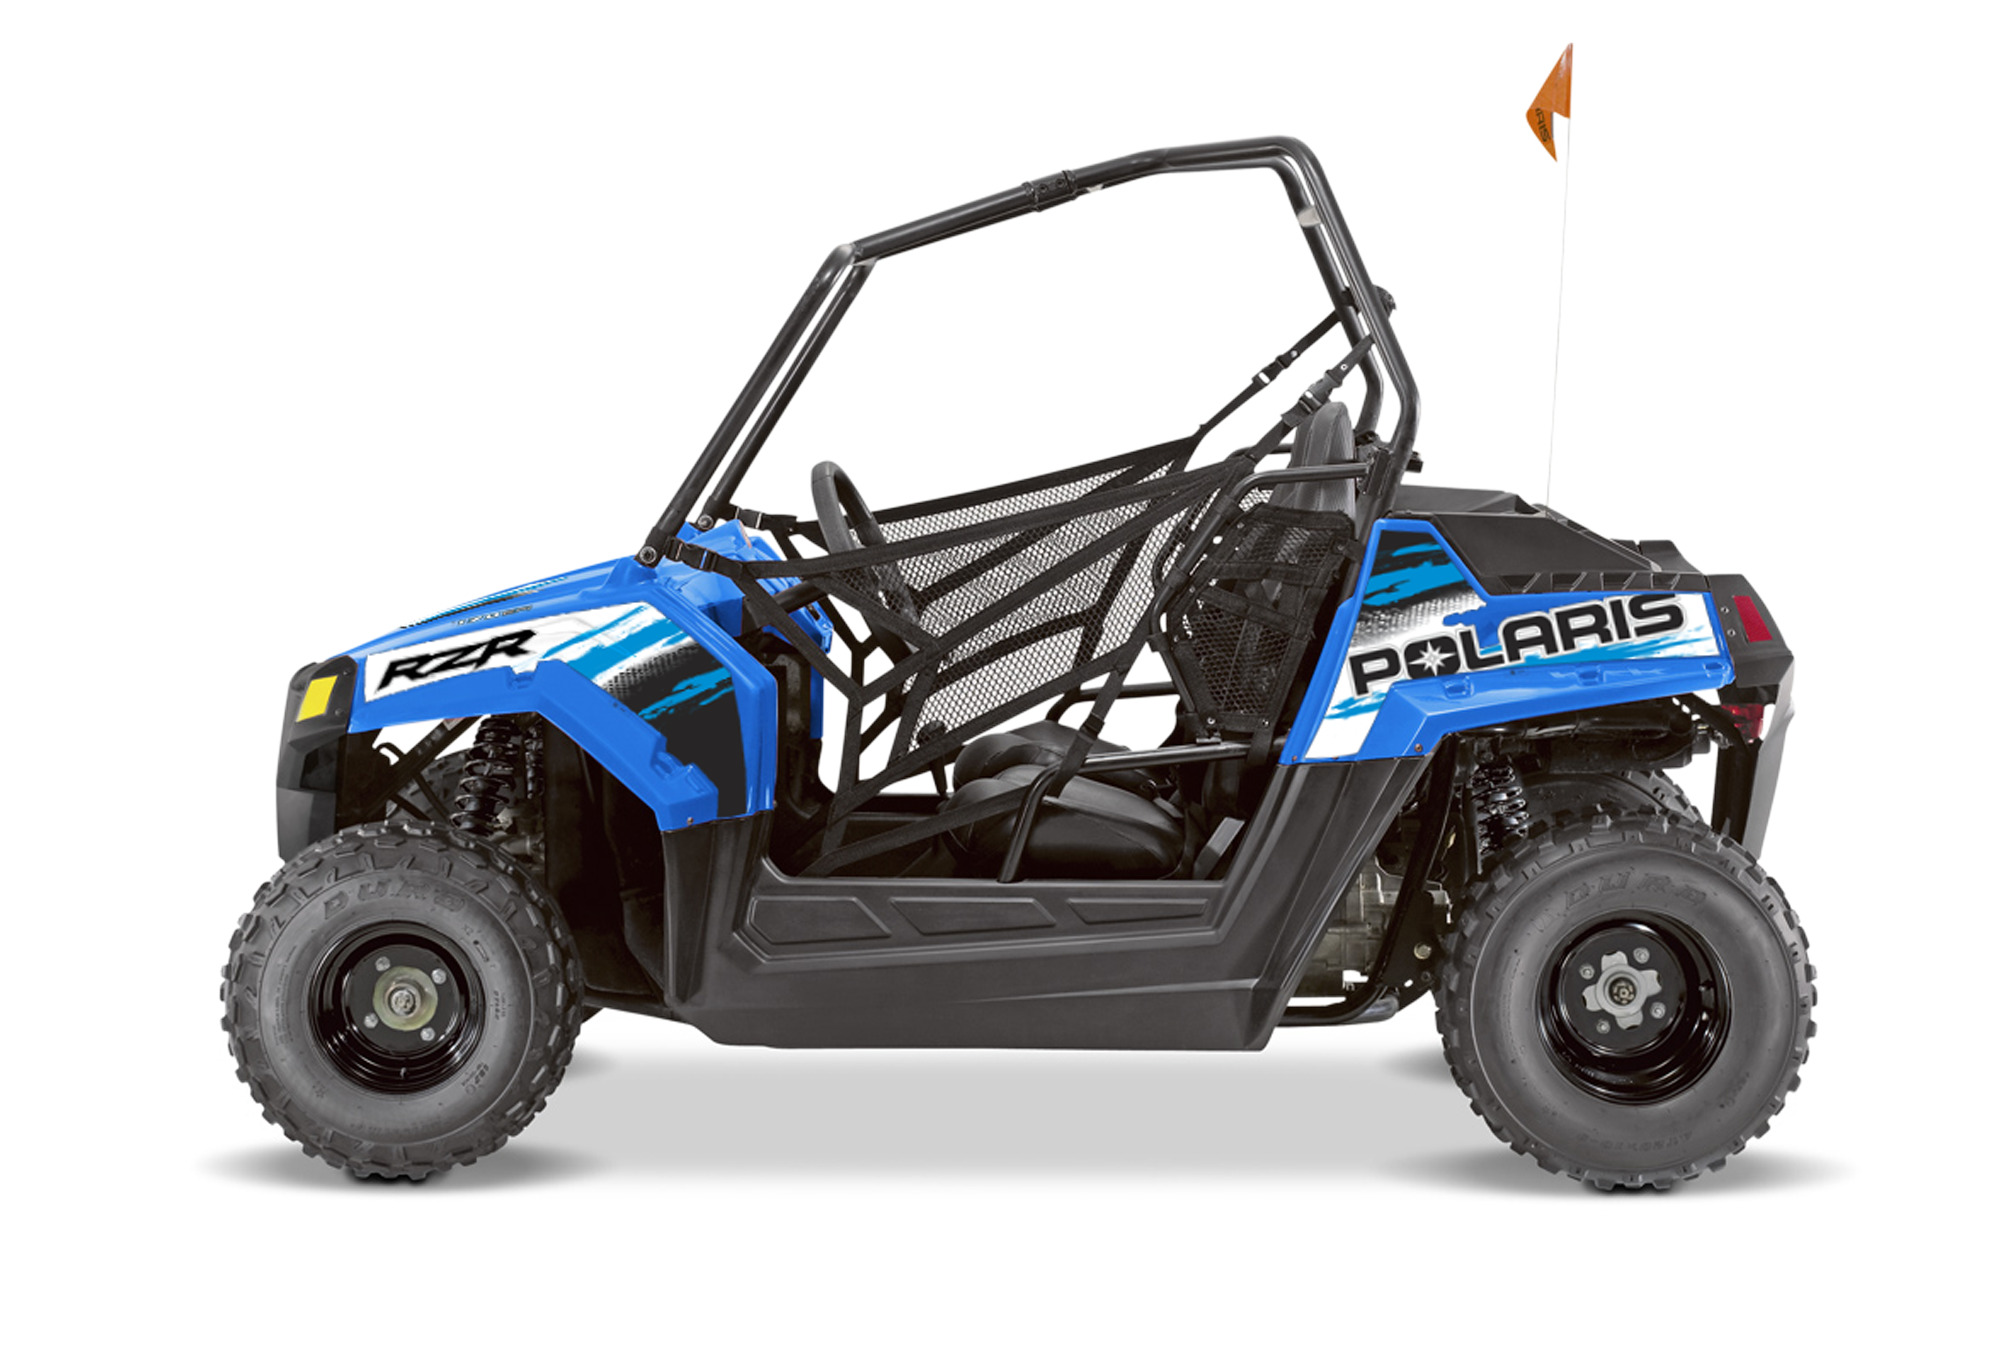 small resolution of polaris recalls rzr 170 recreational off highway vehicles due to 2014 polaris rzr 170 wiring diagram